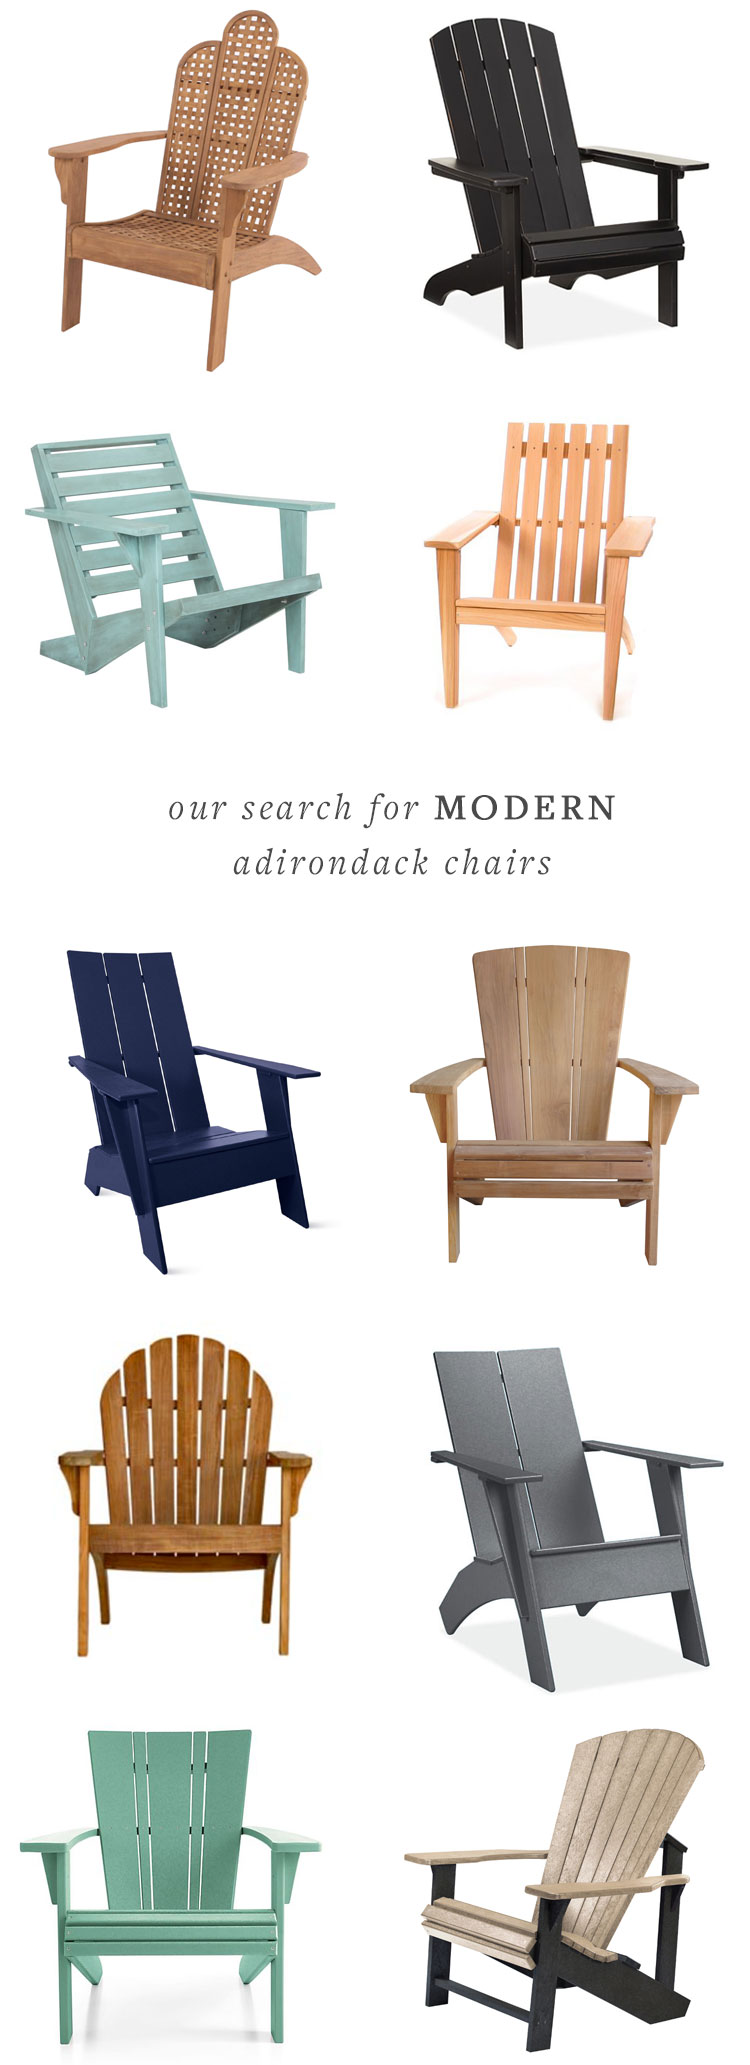 modern adirondack chair patio plans jojotastic our search for chairs the perfect addition summertime entertaining on deck